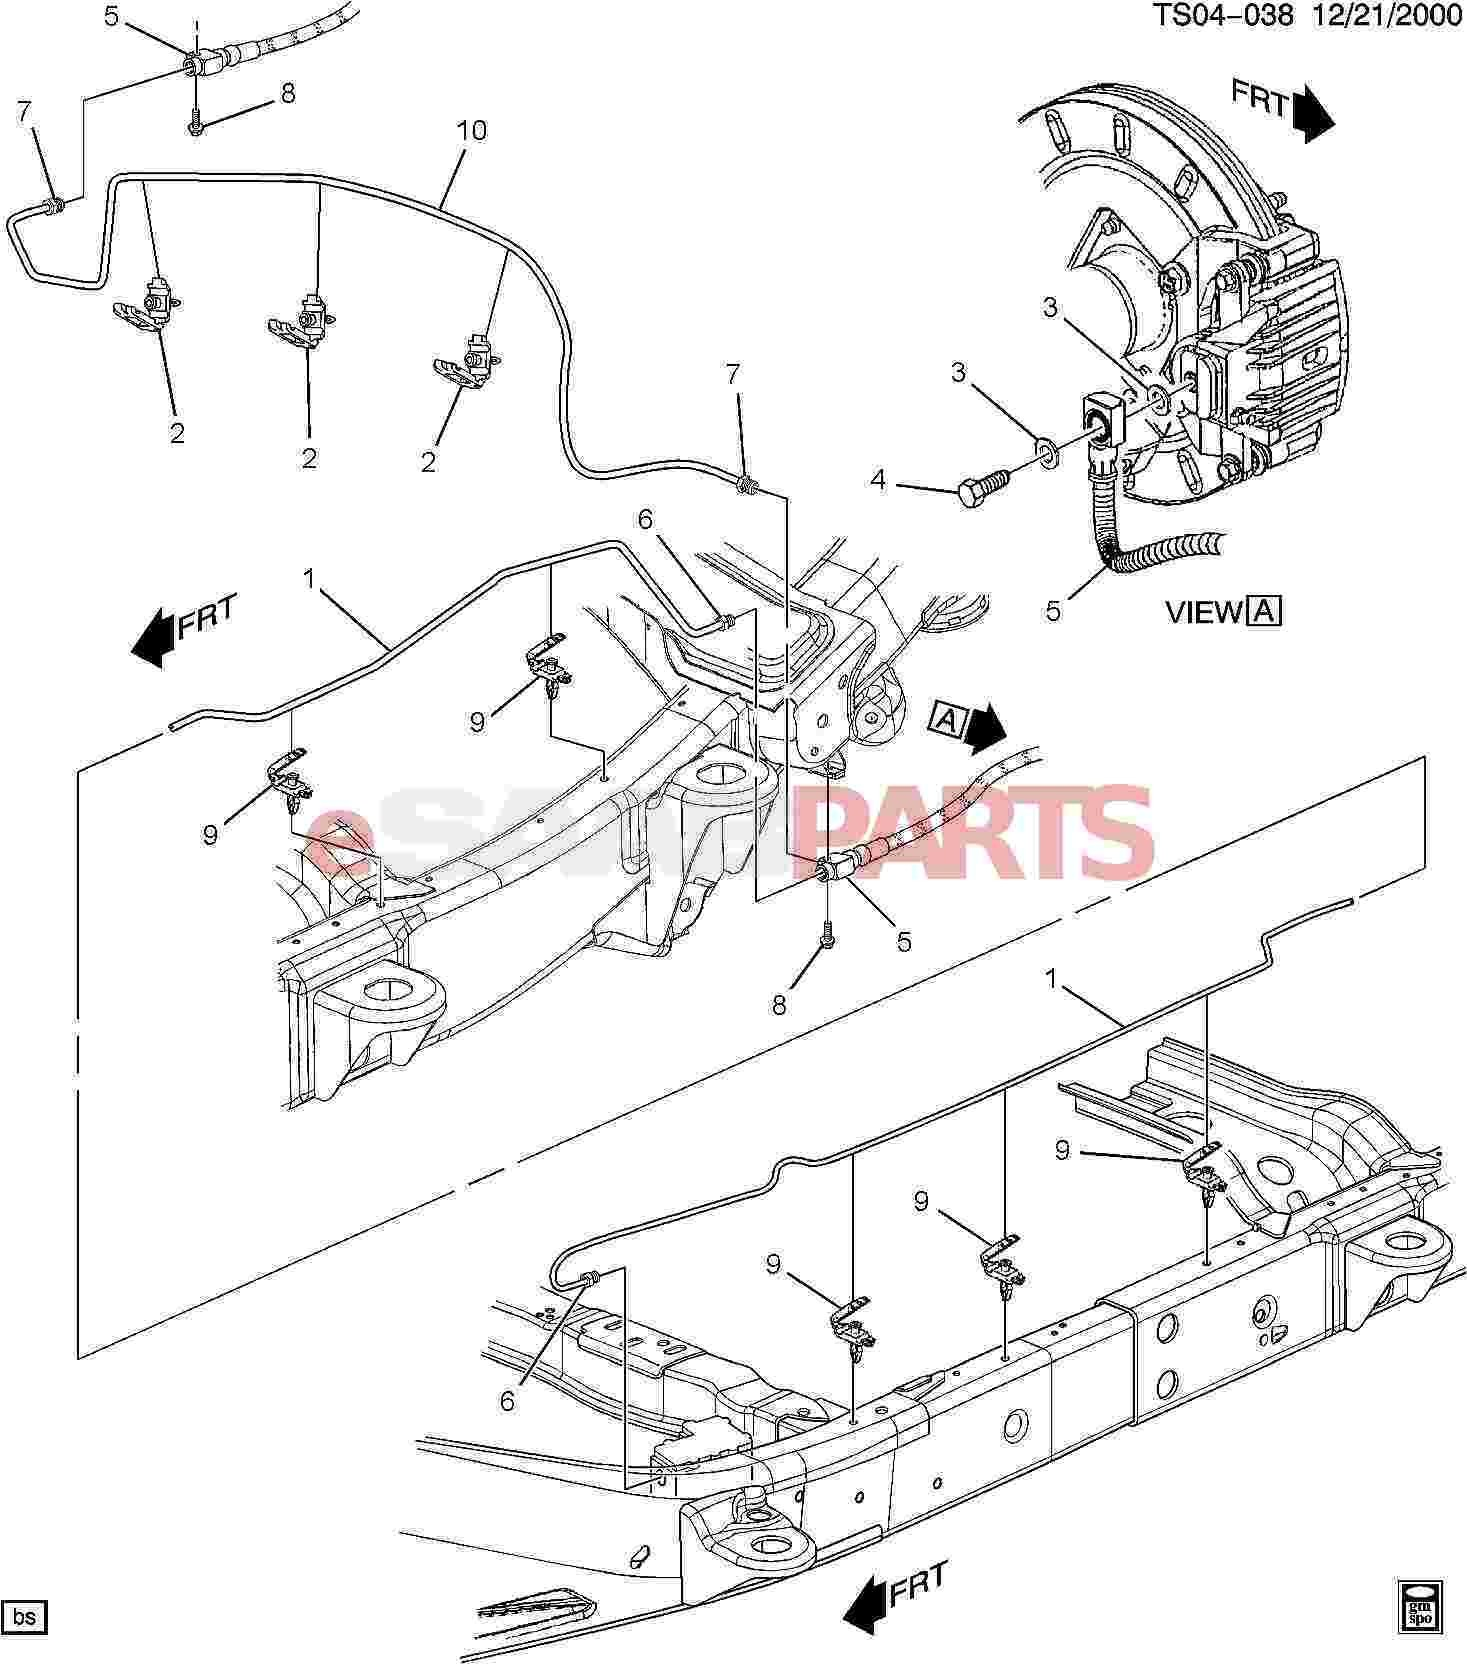 Gmc Envoy Parts Diagram Esaabparts Saab 9 7x Brakes Parts